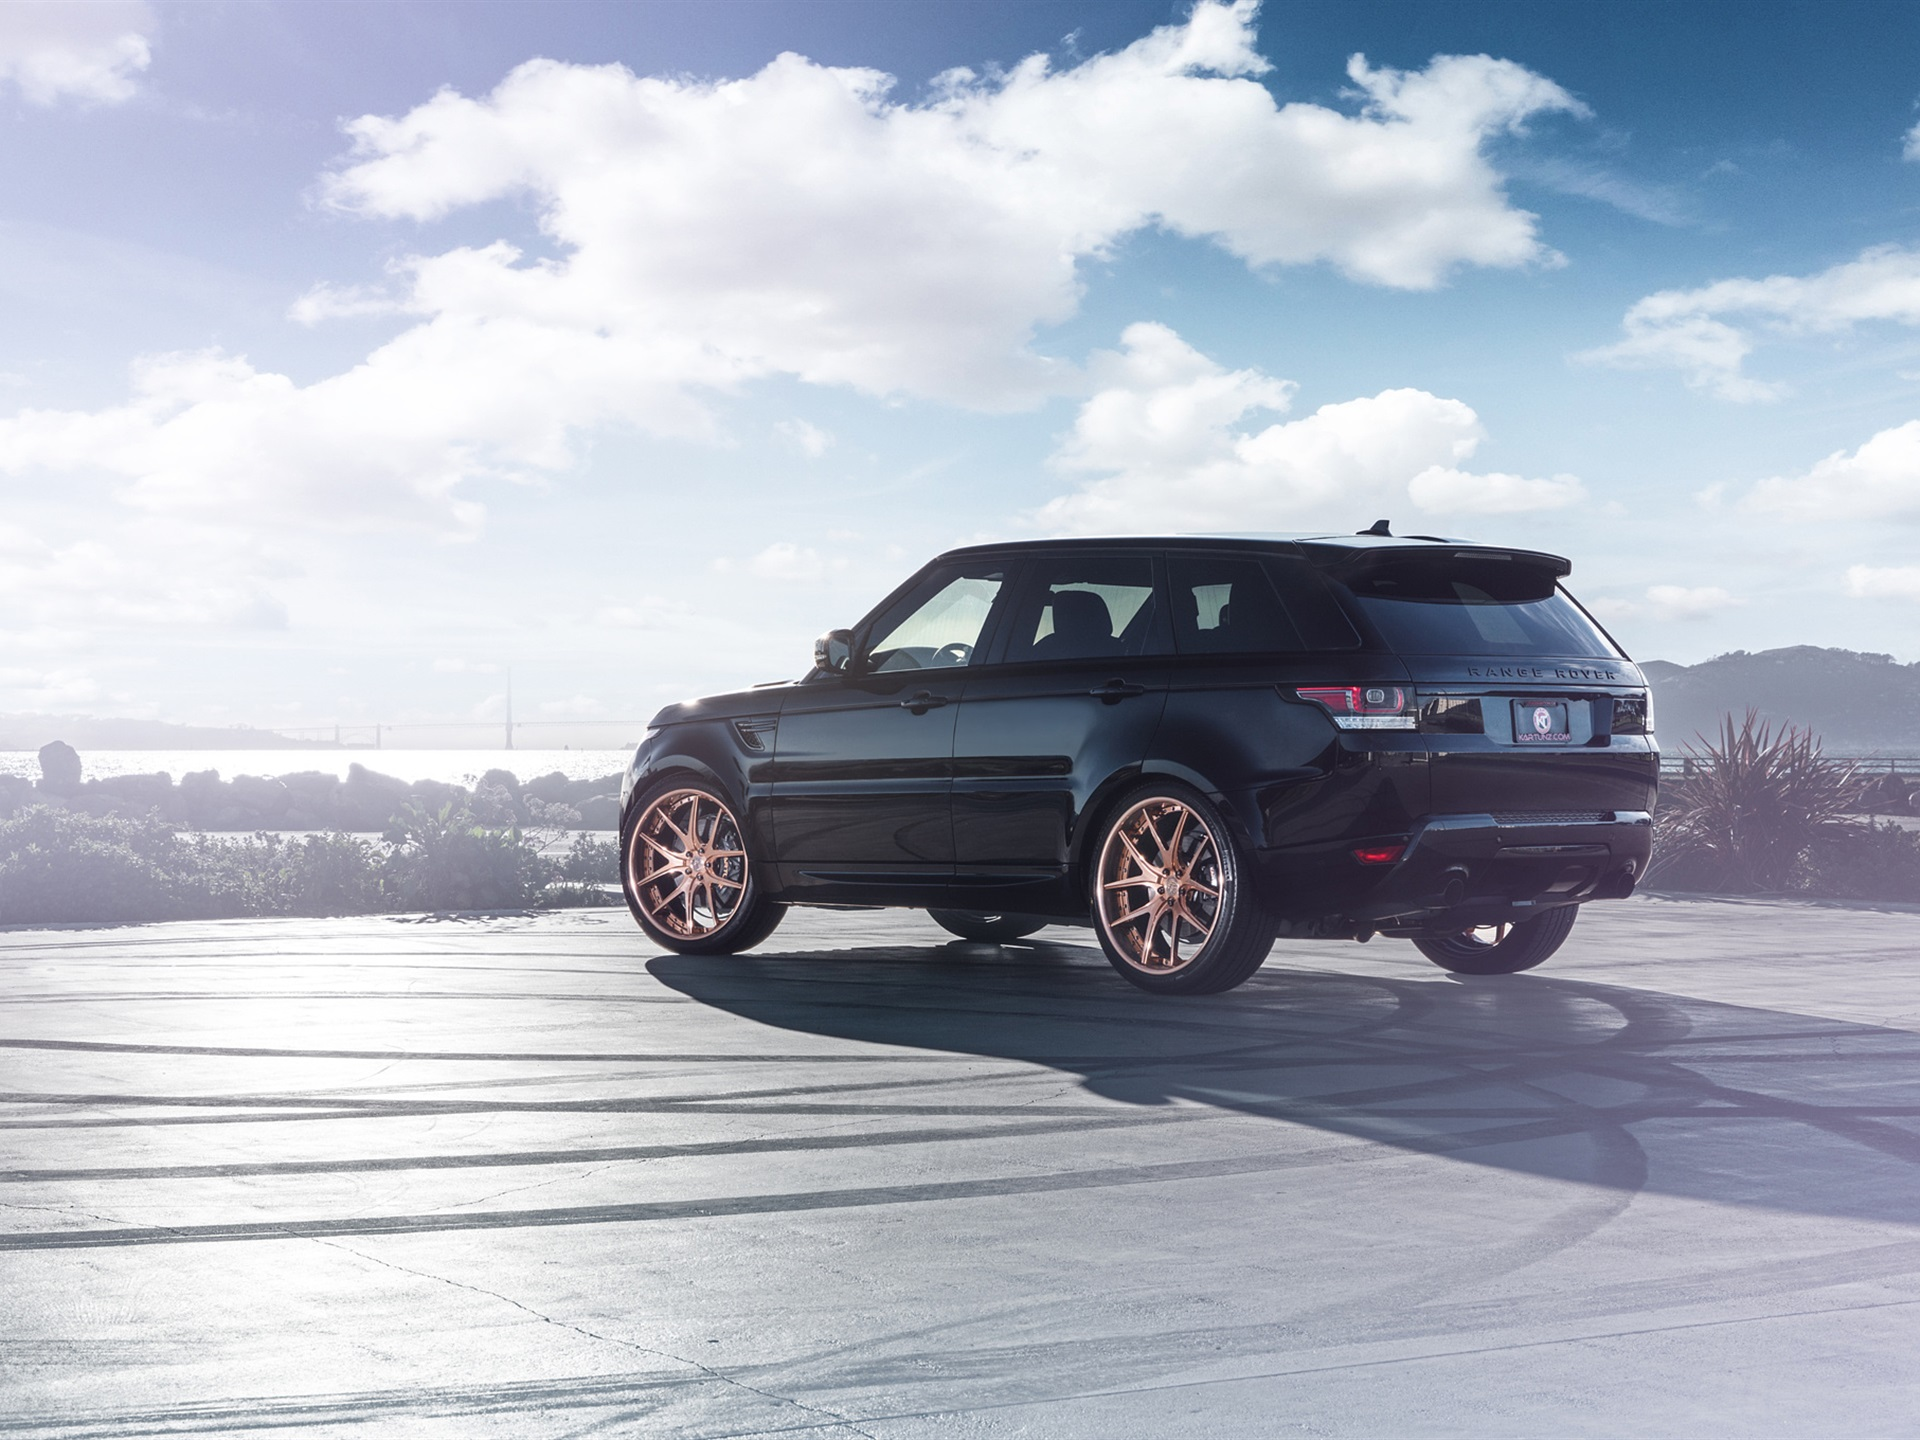 Wallpaper Land Rover Range Rover Black Suv Back View 1920x1440 Hd Picture Image